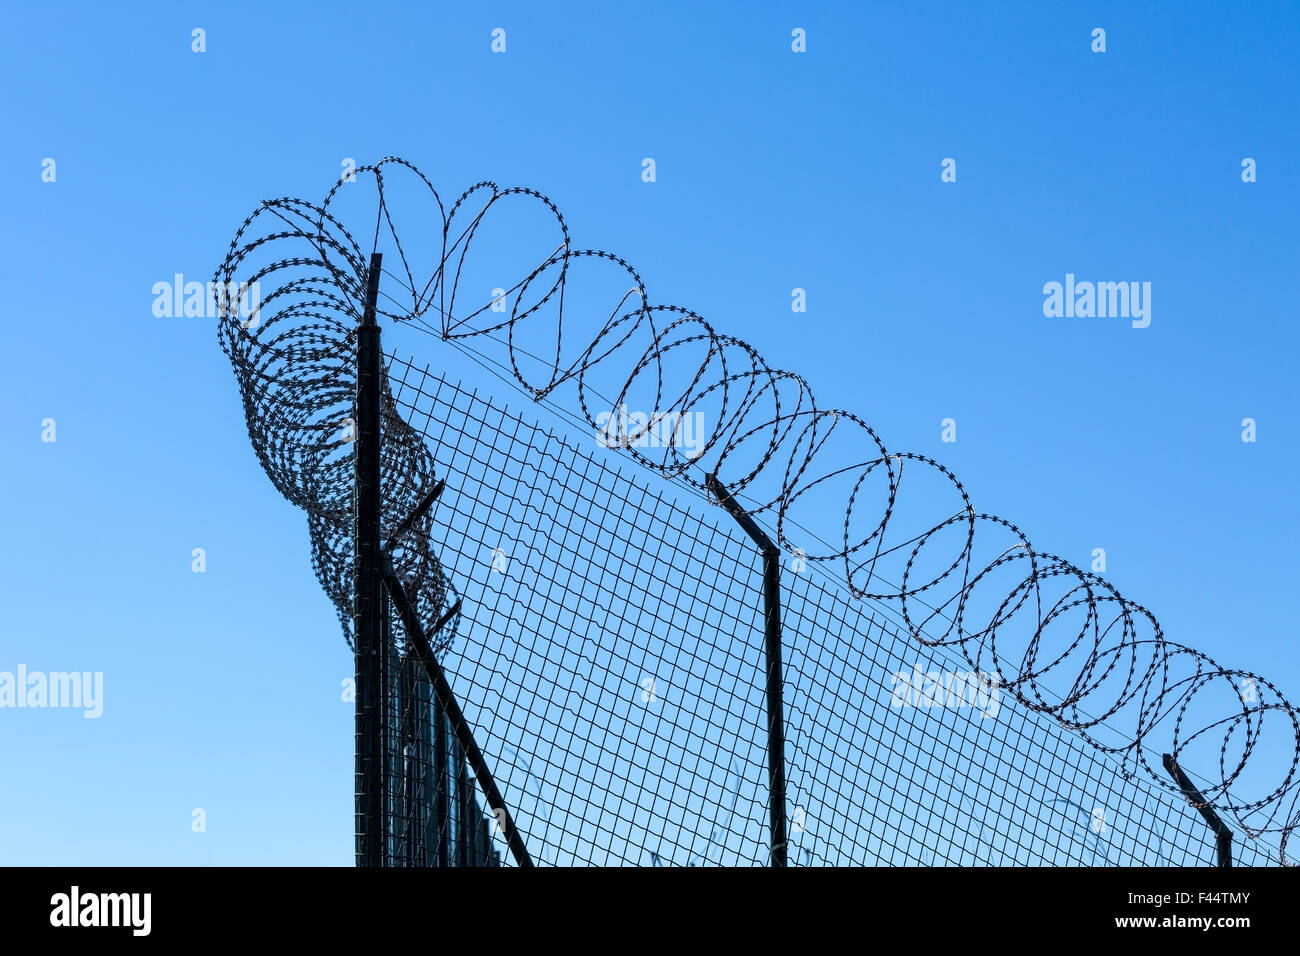 Wired Fence with Spiral Barbwire Stock Photo: 88617675 - Alamy